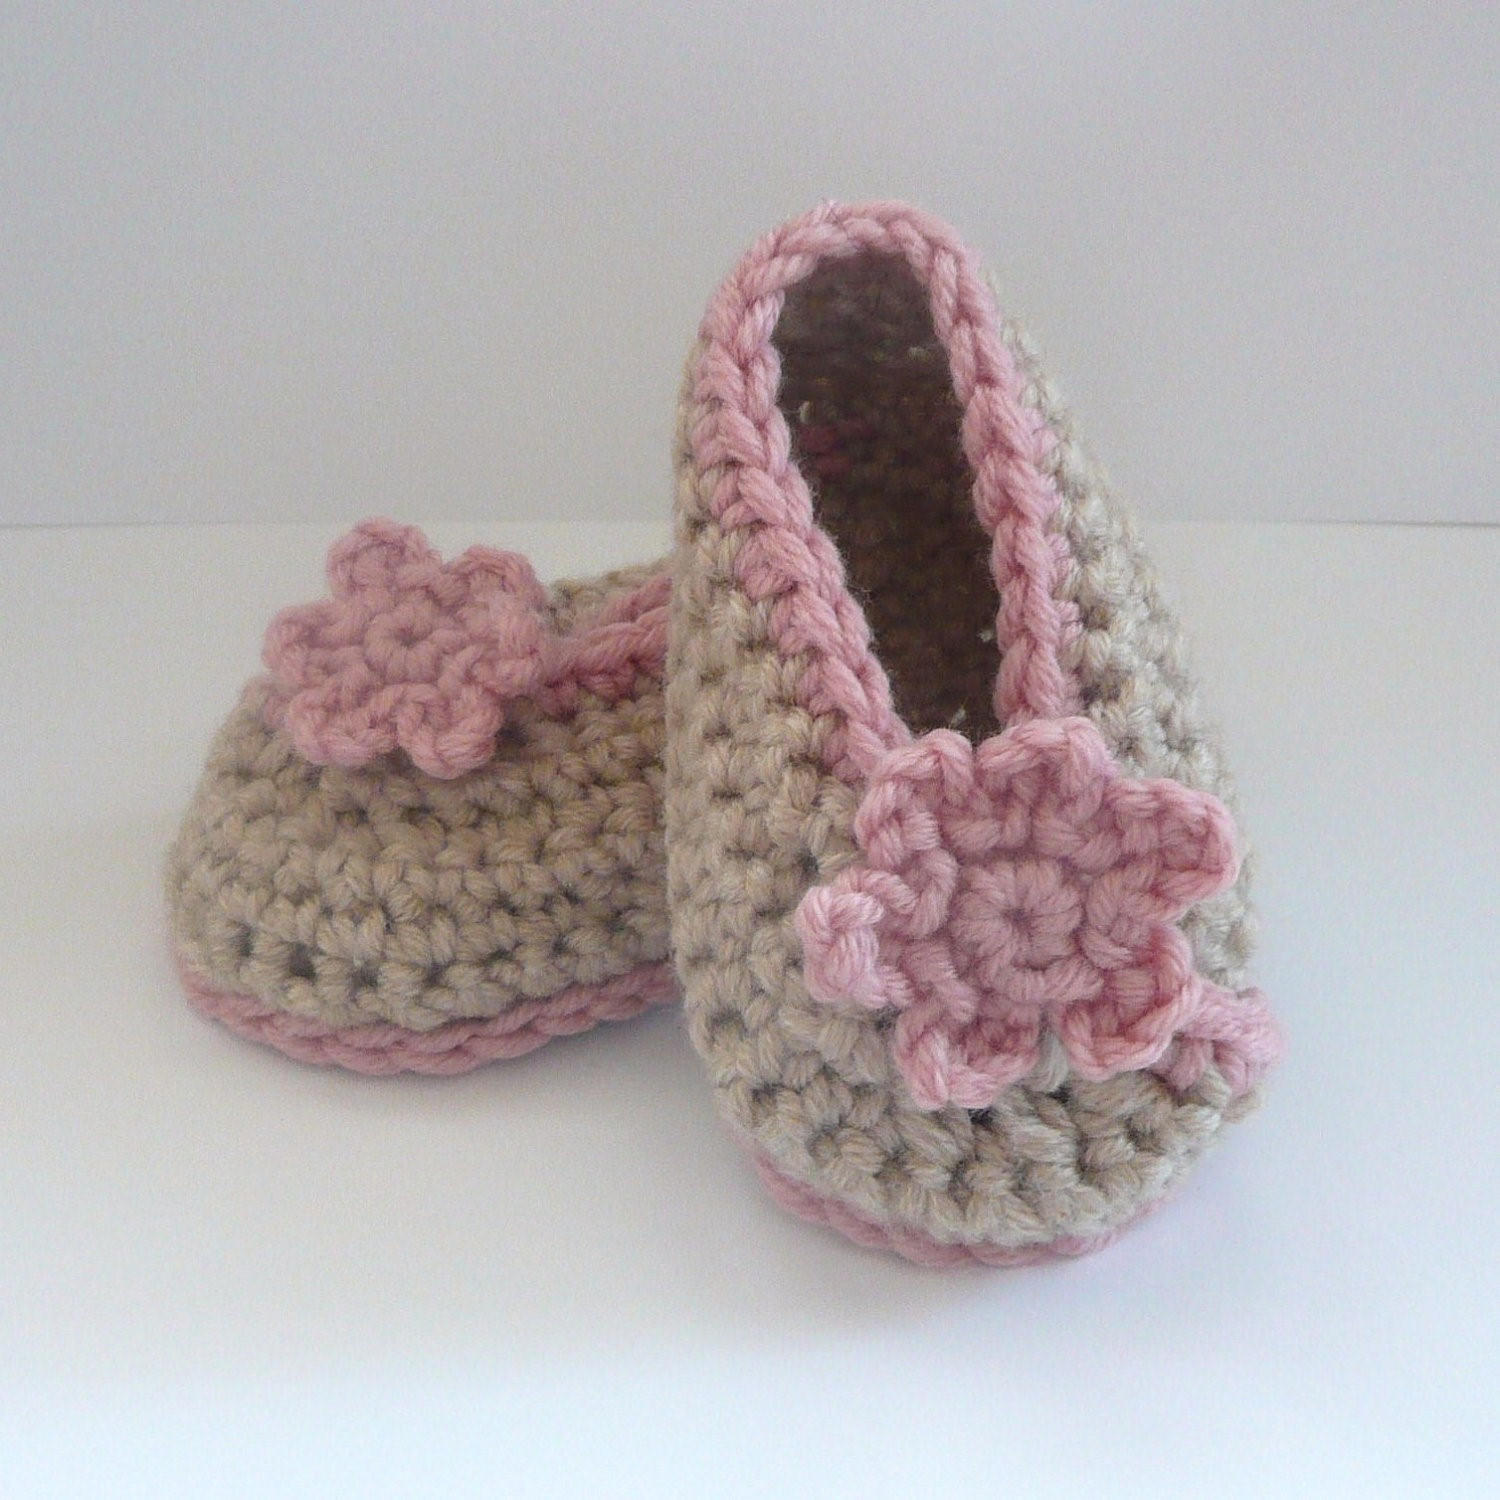 Baby Booties Crochet Pattern for Beginners Awesome How to Make Easy Crochet Baby Booties Of Perfect 47 Ideas Baby Booties Crochet Pattern for Beginners